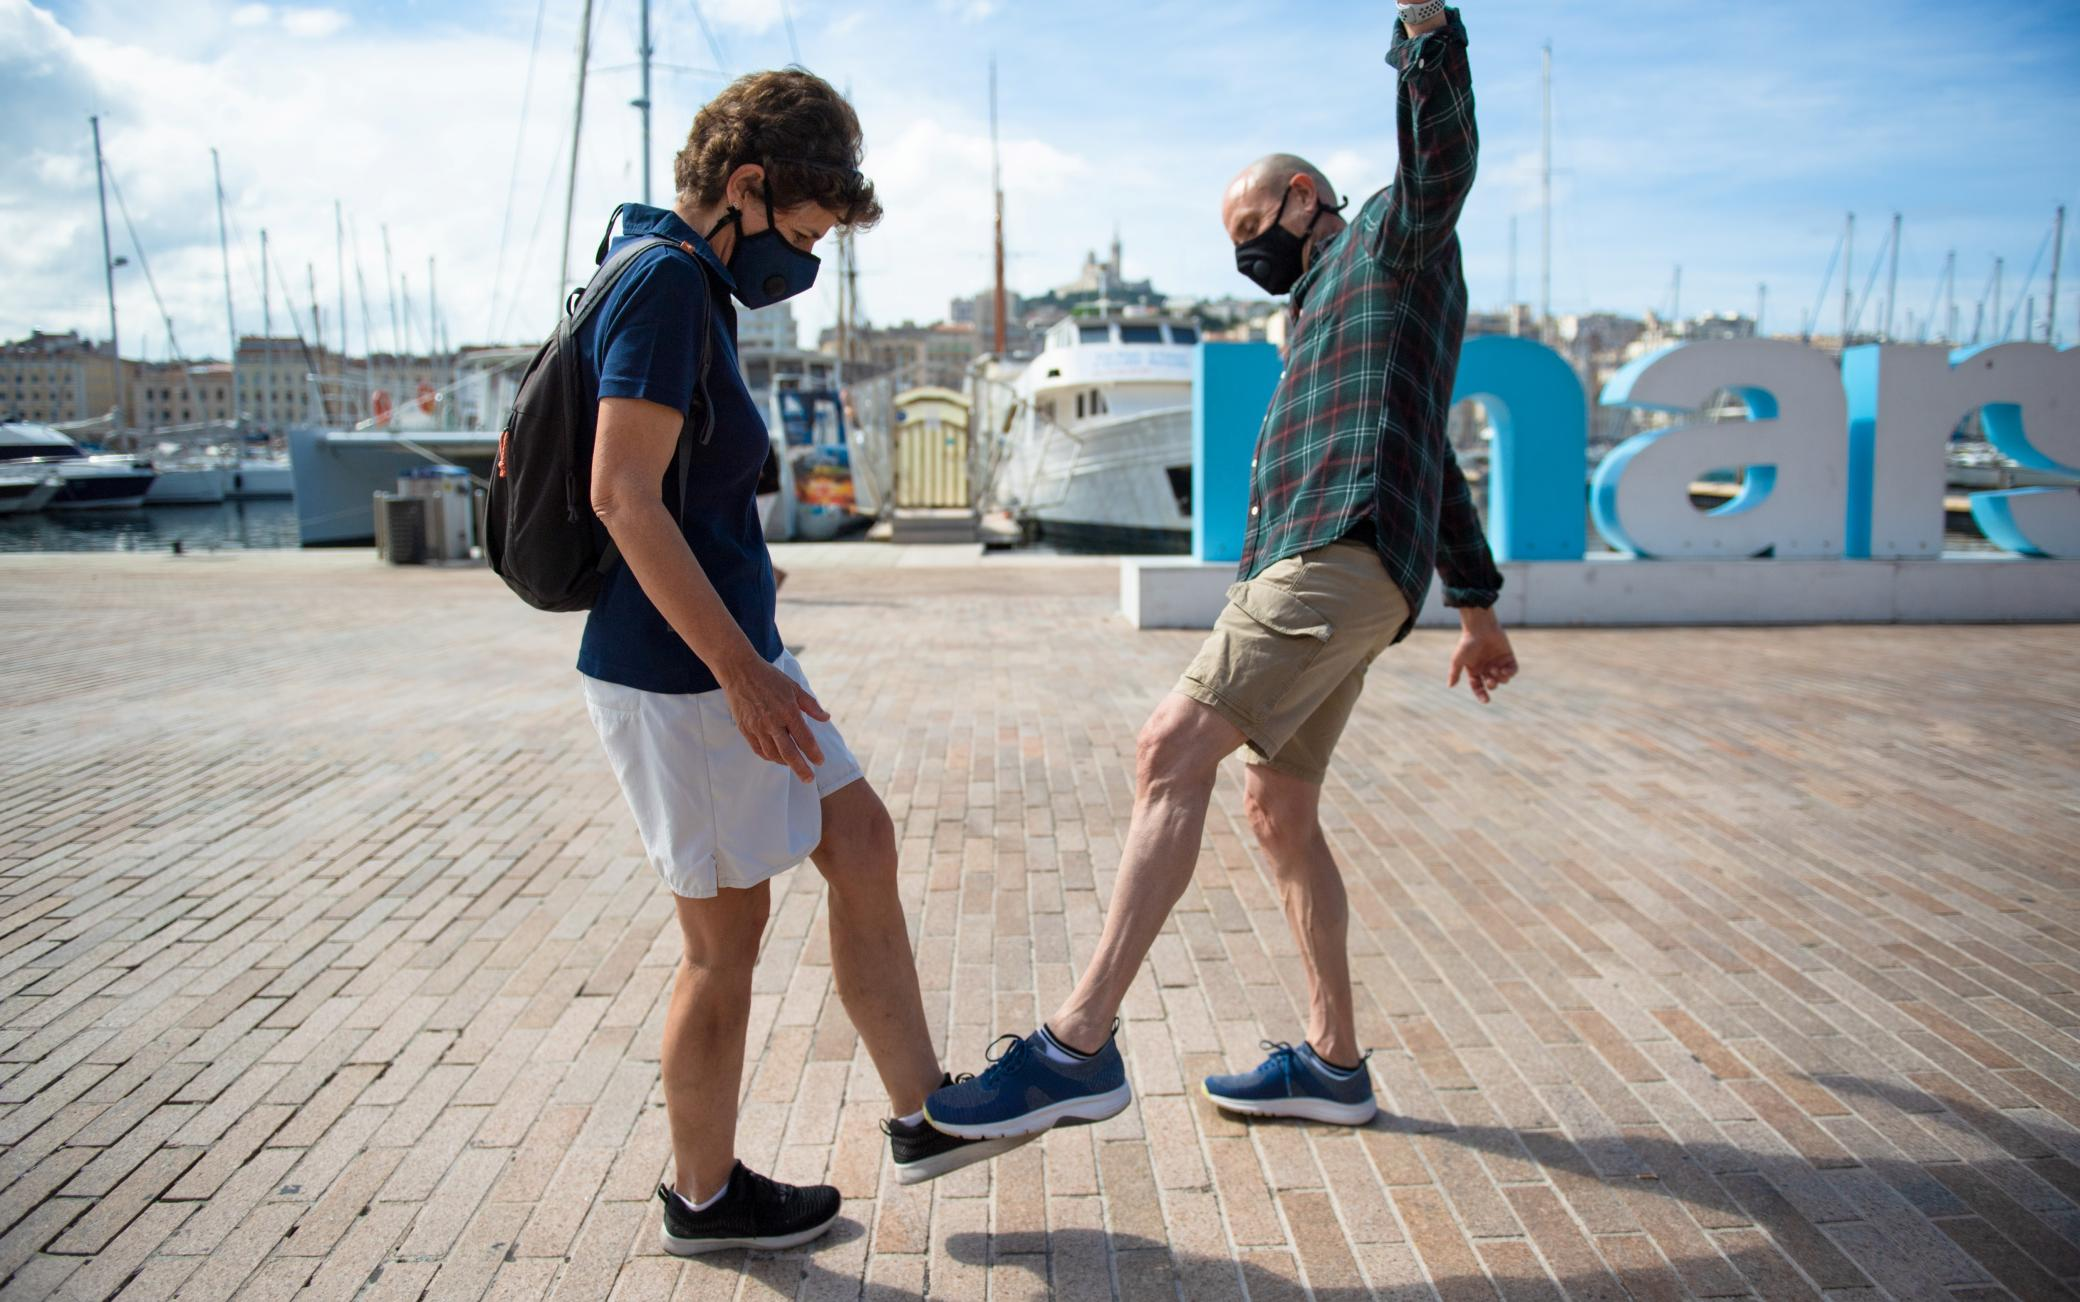 A man and a woman pose as they greet each other with their feet in the Vieux Port of Marseille southern France, on May 17, 2020, in order to use new social distanciation gesture to salute people as a prophylactic measure against the spread of the Covid-19 disease caused by the novel coronavirus. (Photo by CLEMENT MAHOUDEAU / AFP) (Photo by CLEMENT MAHOUDEAU/AFP via Getty Images)